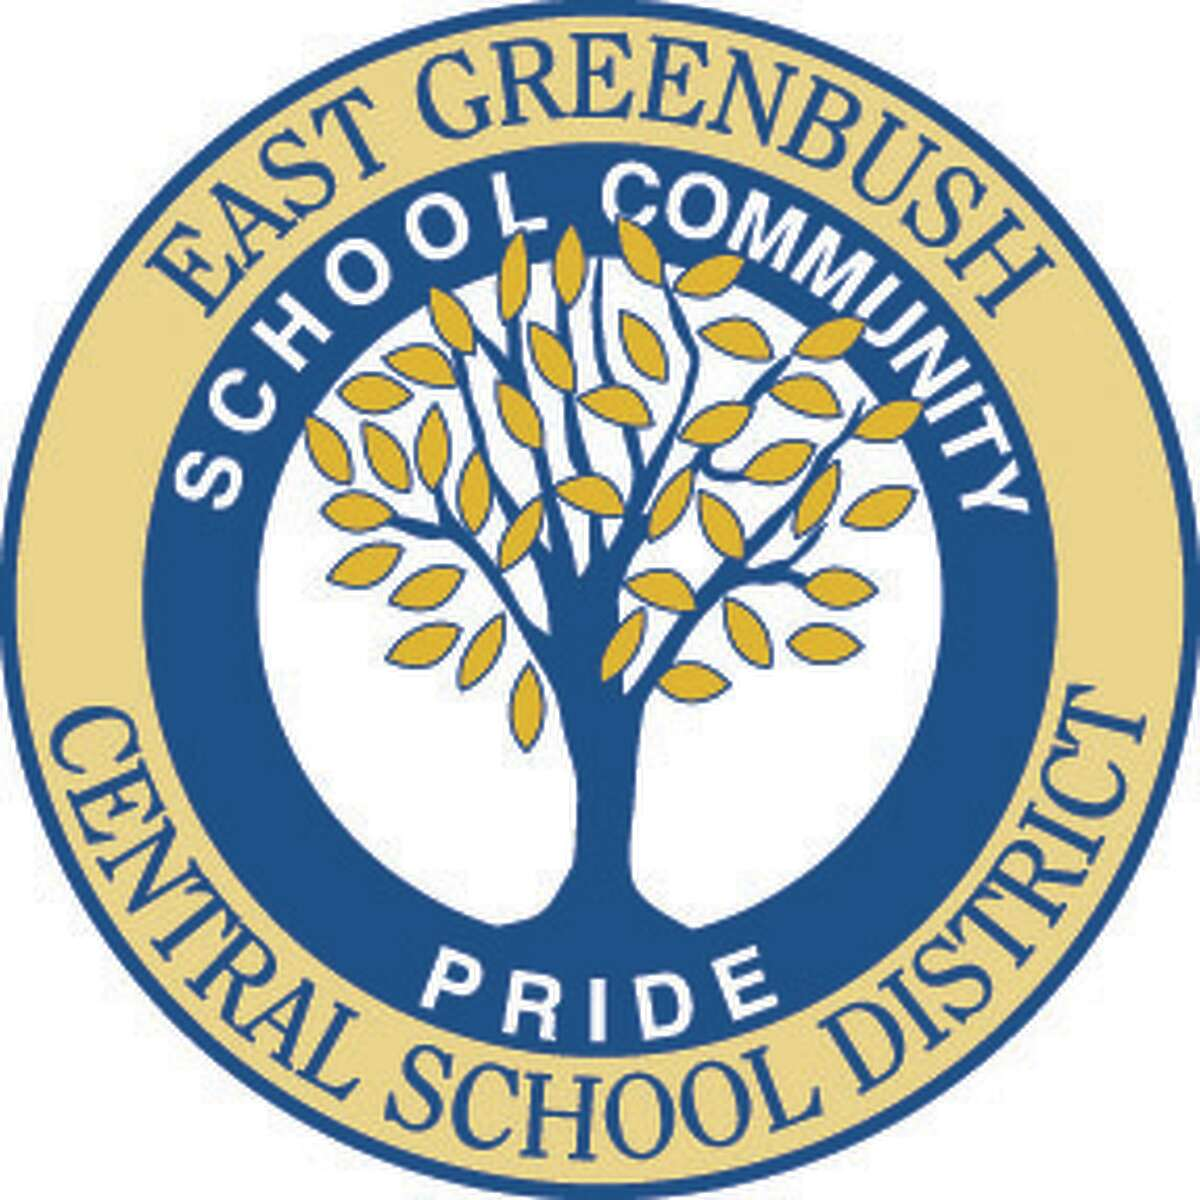 East Greenbush Central School District educates approximately 4,000 students with a focus on a 21st century education and an outlook toward lifelong learning. The district has seven schools - one high school, one middle school and five neighborhood elementary schools.